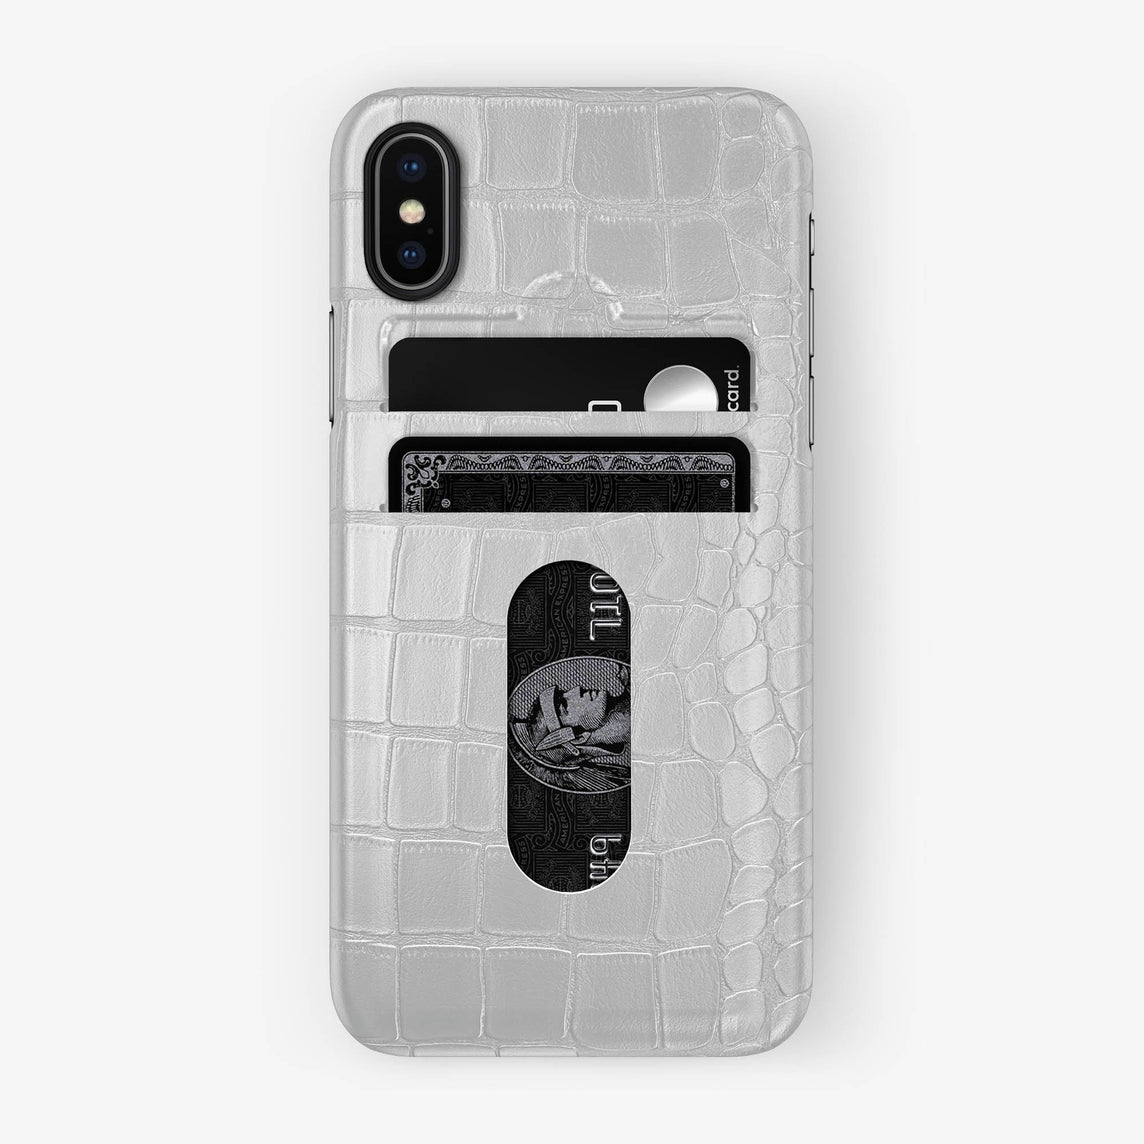 Alligator Card Holder Case iPhone X/Xs | White - Black - Hadoro